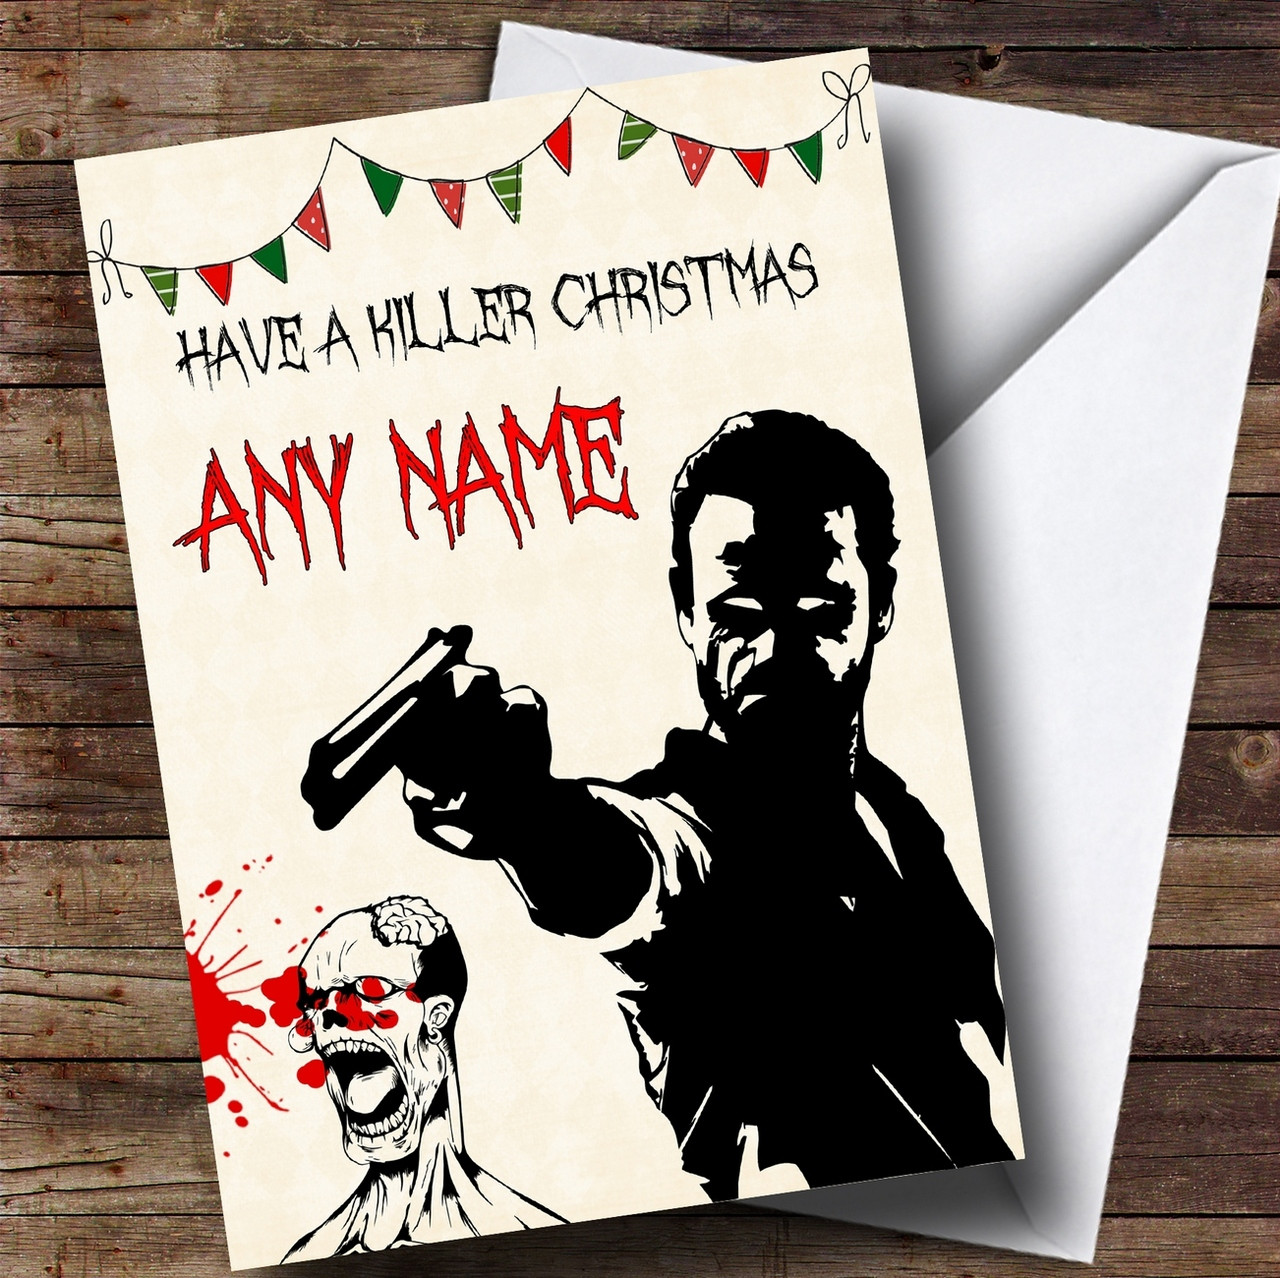 Killer rick grimes the walking dead personalised christmas card killer rick grimes the walking dead personalised christmas card m4hsunfo